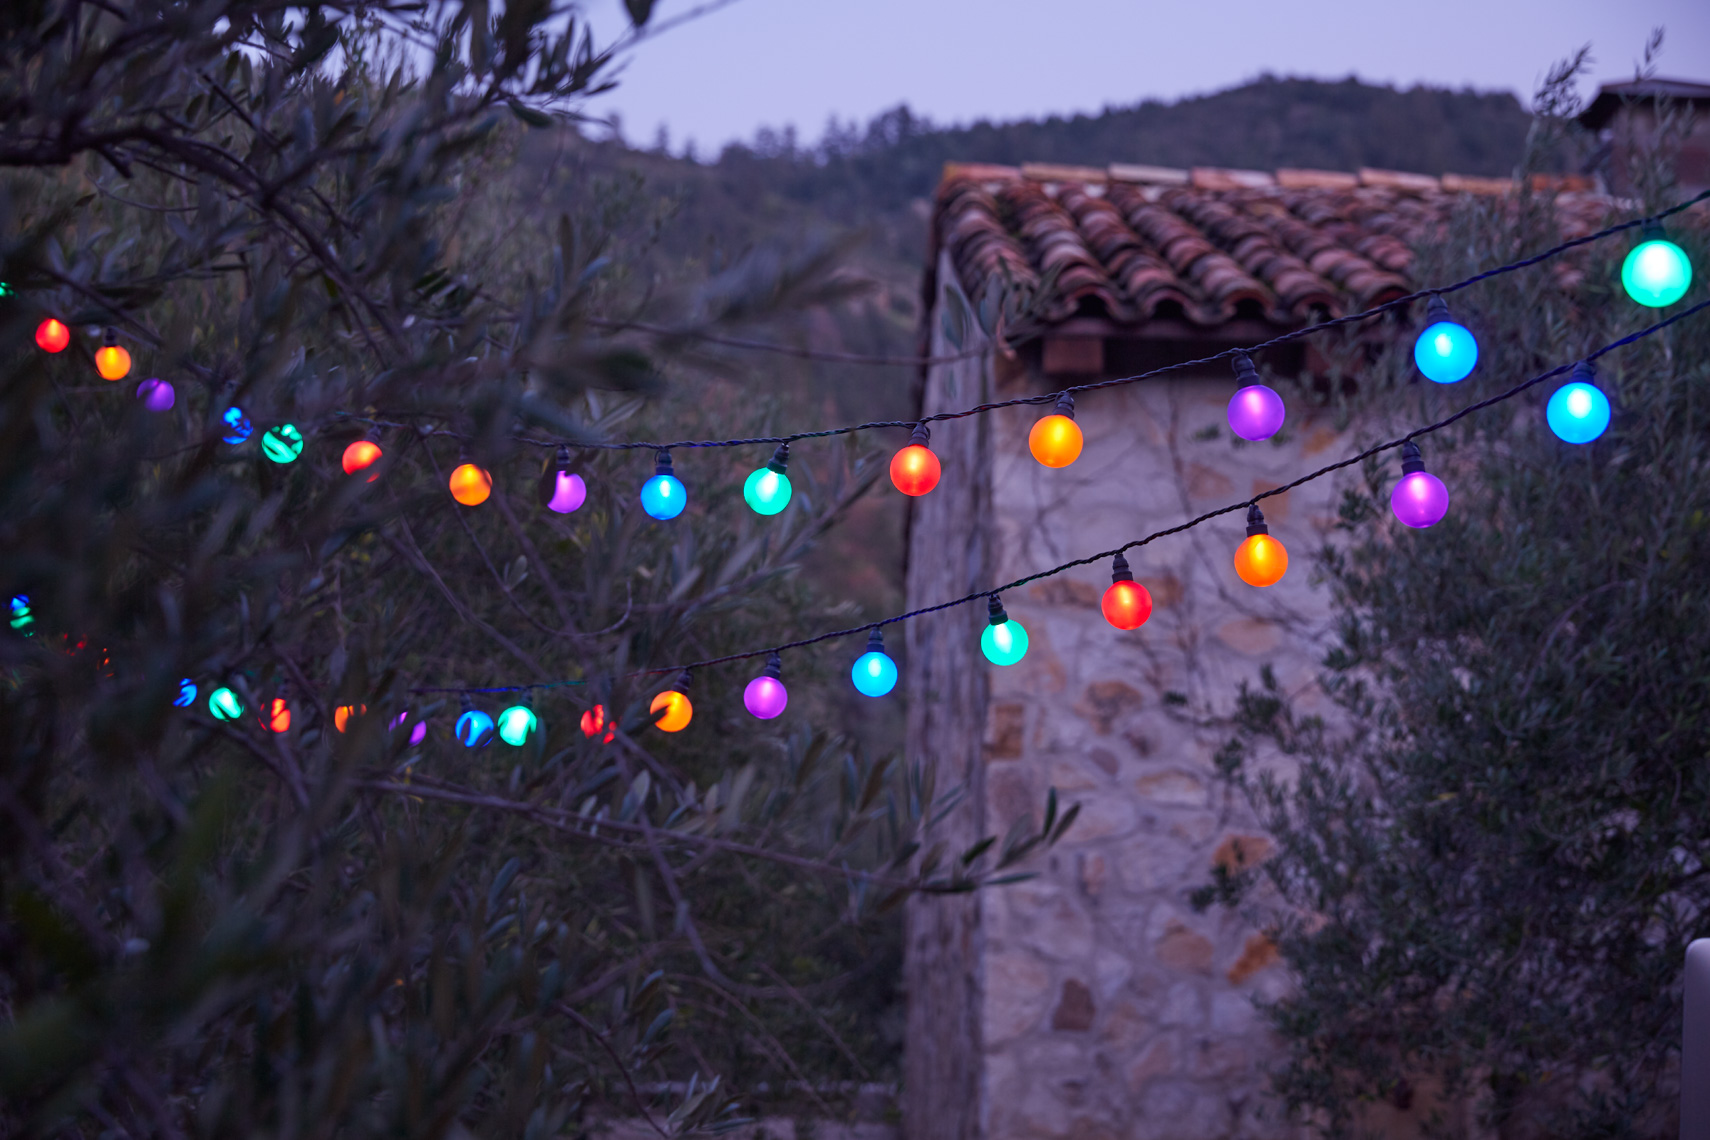 Two colorful light strings with olive trees and stone building at dusk